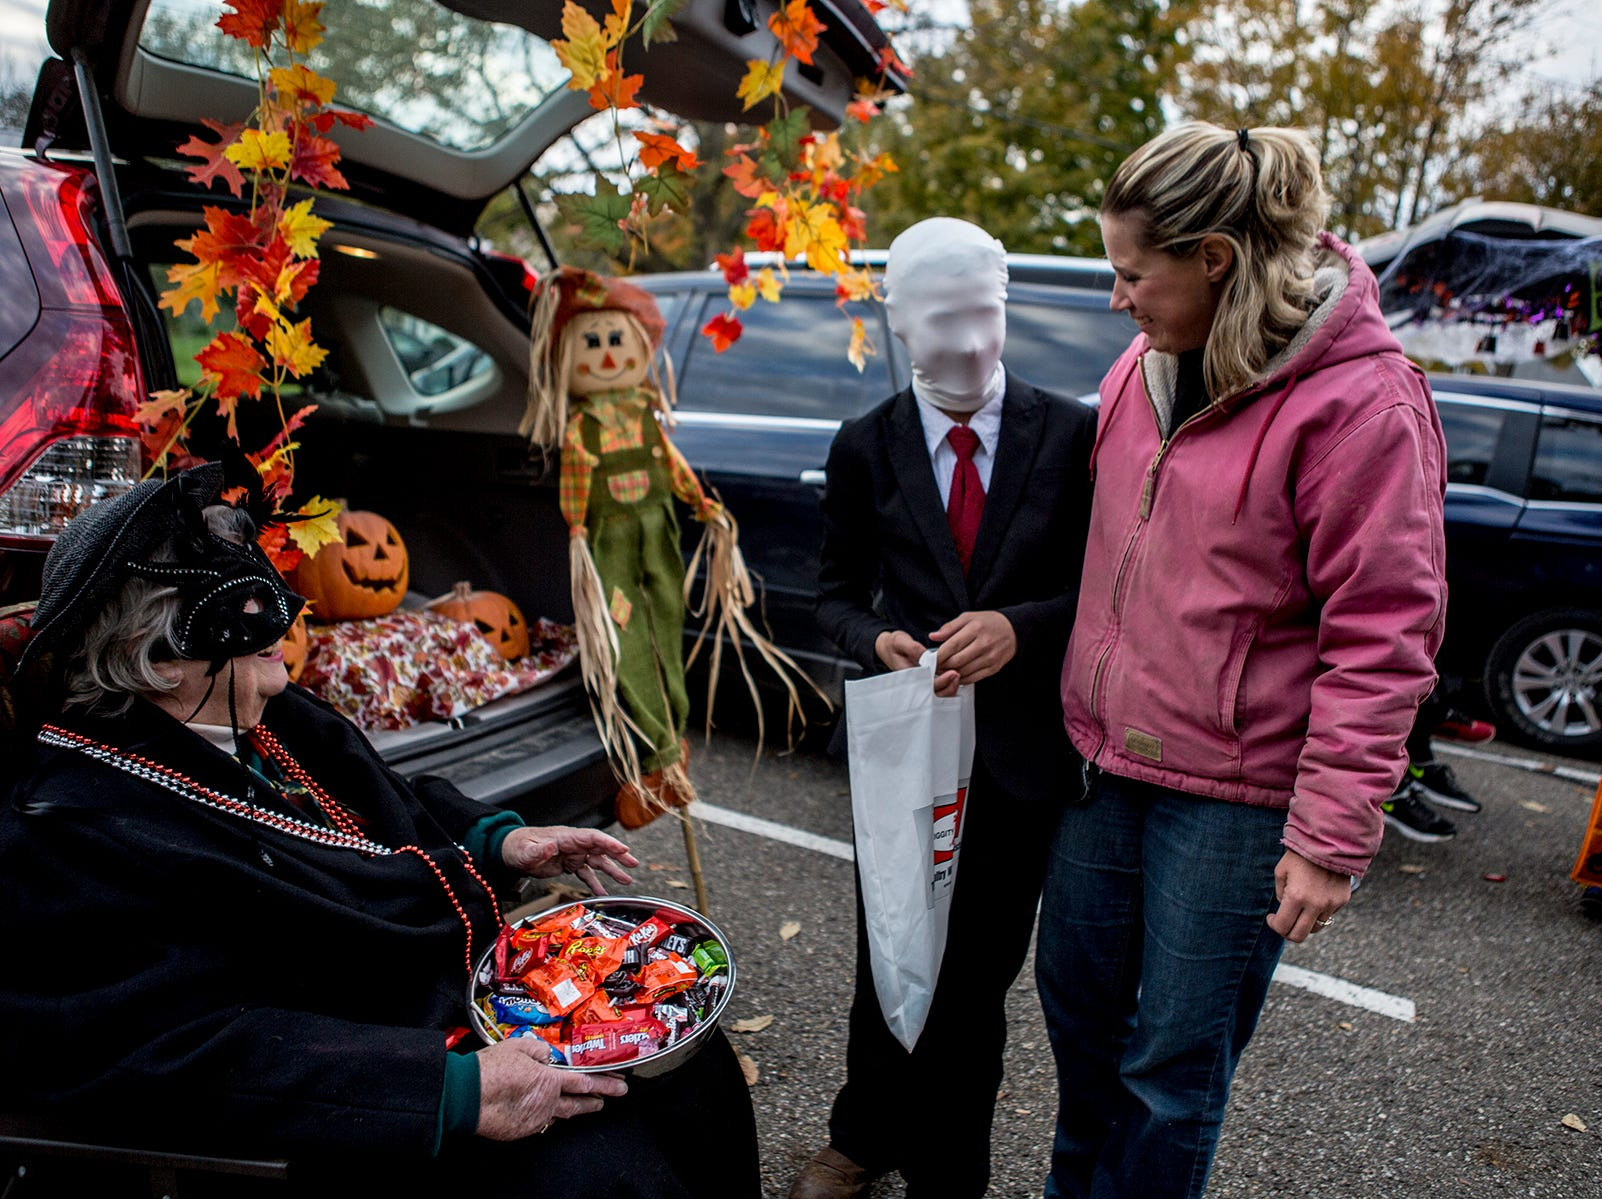 Mamie helps her son, Arthur navigate the cars offering Halloween candy at Utica's Trunk or Treat. Arthur, who went as the slender man, was having trouble seeing through his face mask.